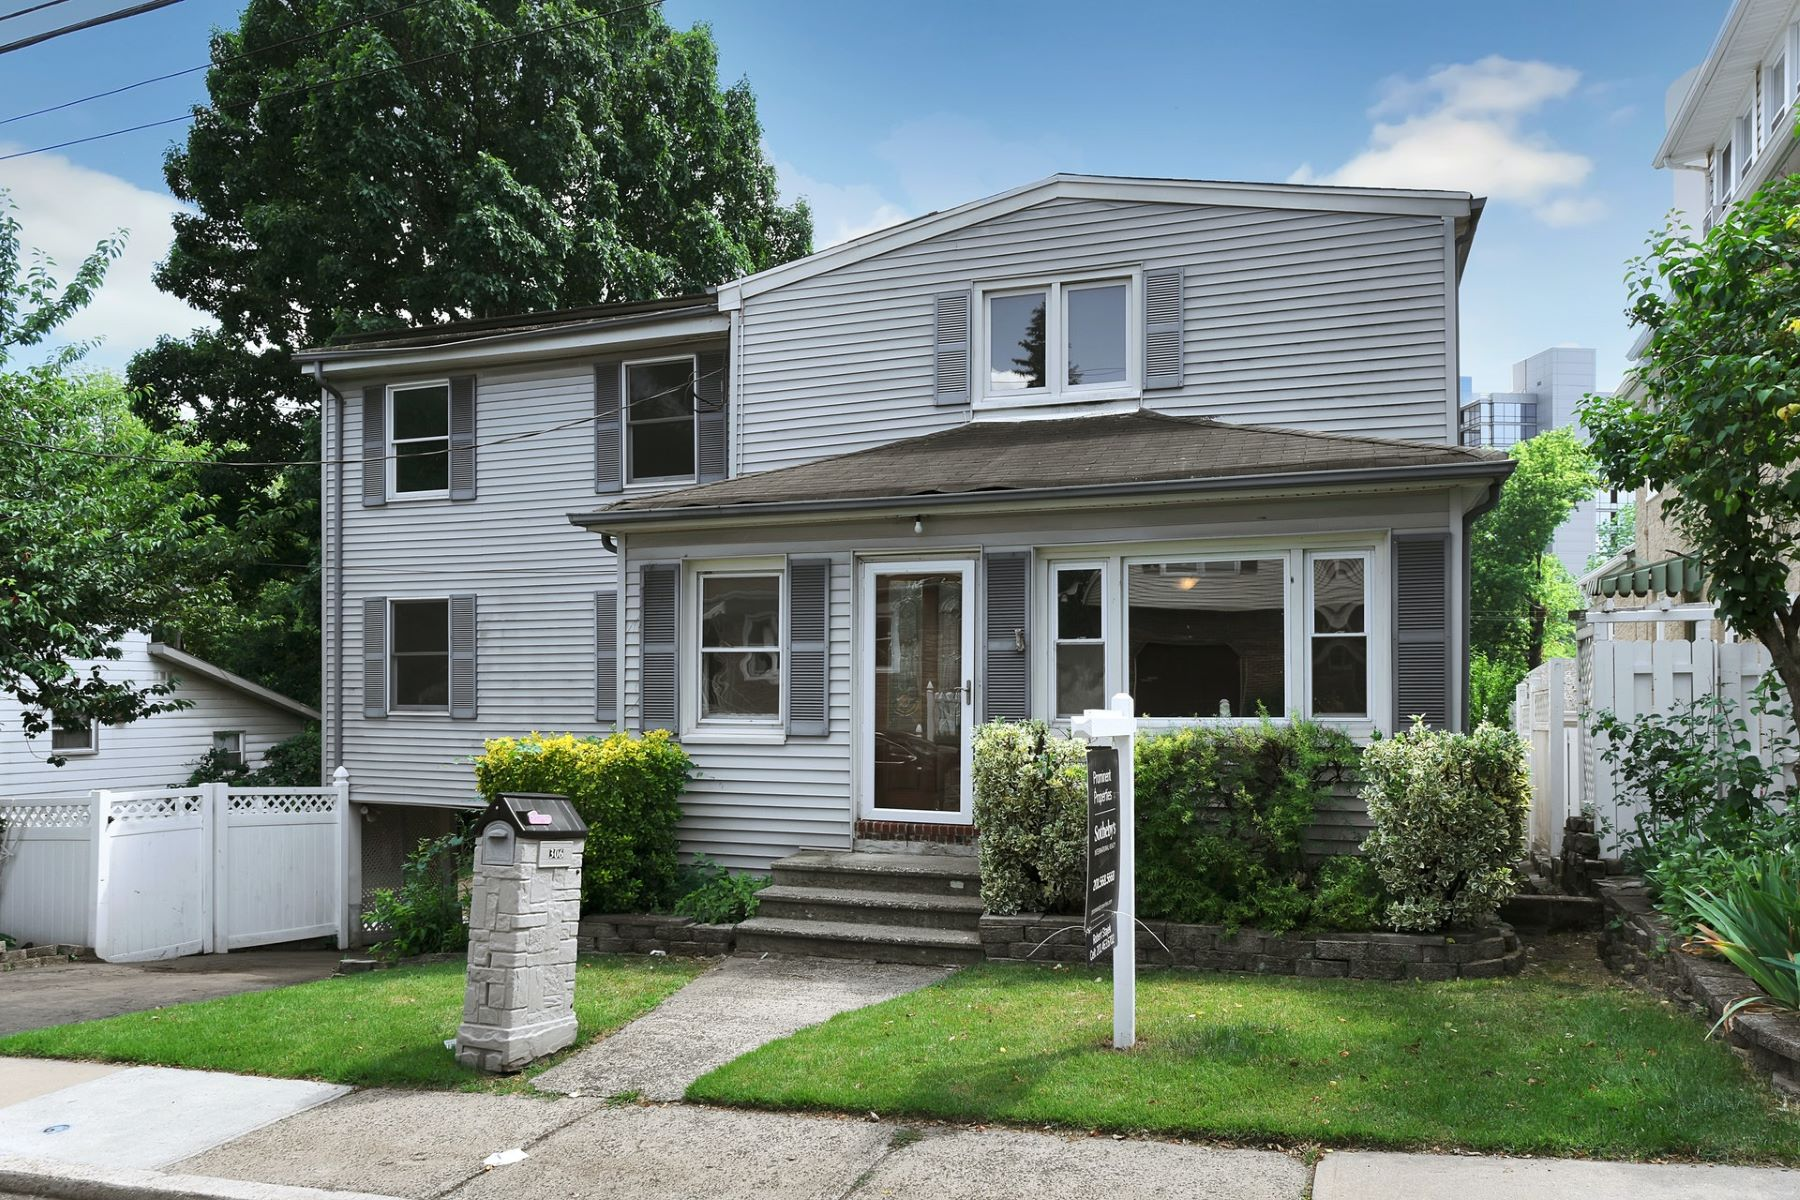 Single Family Homes for Active at Great Opportunity! 306 Harding Ave Teaneck, New Jersey 07666 United States